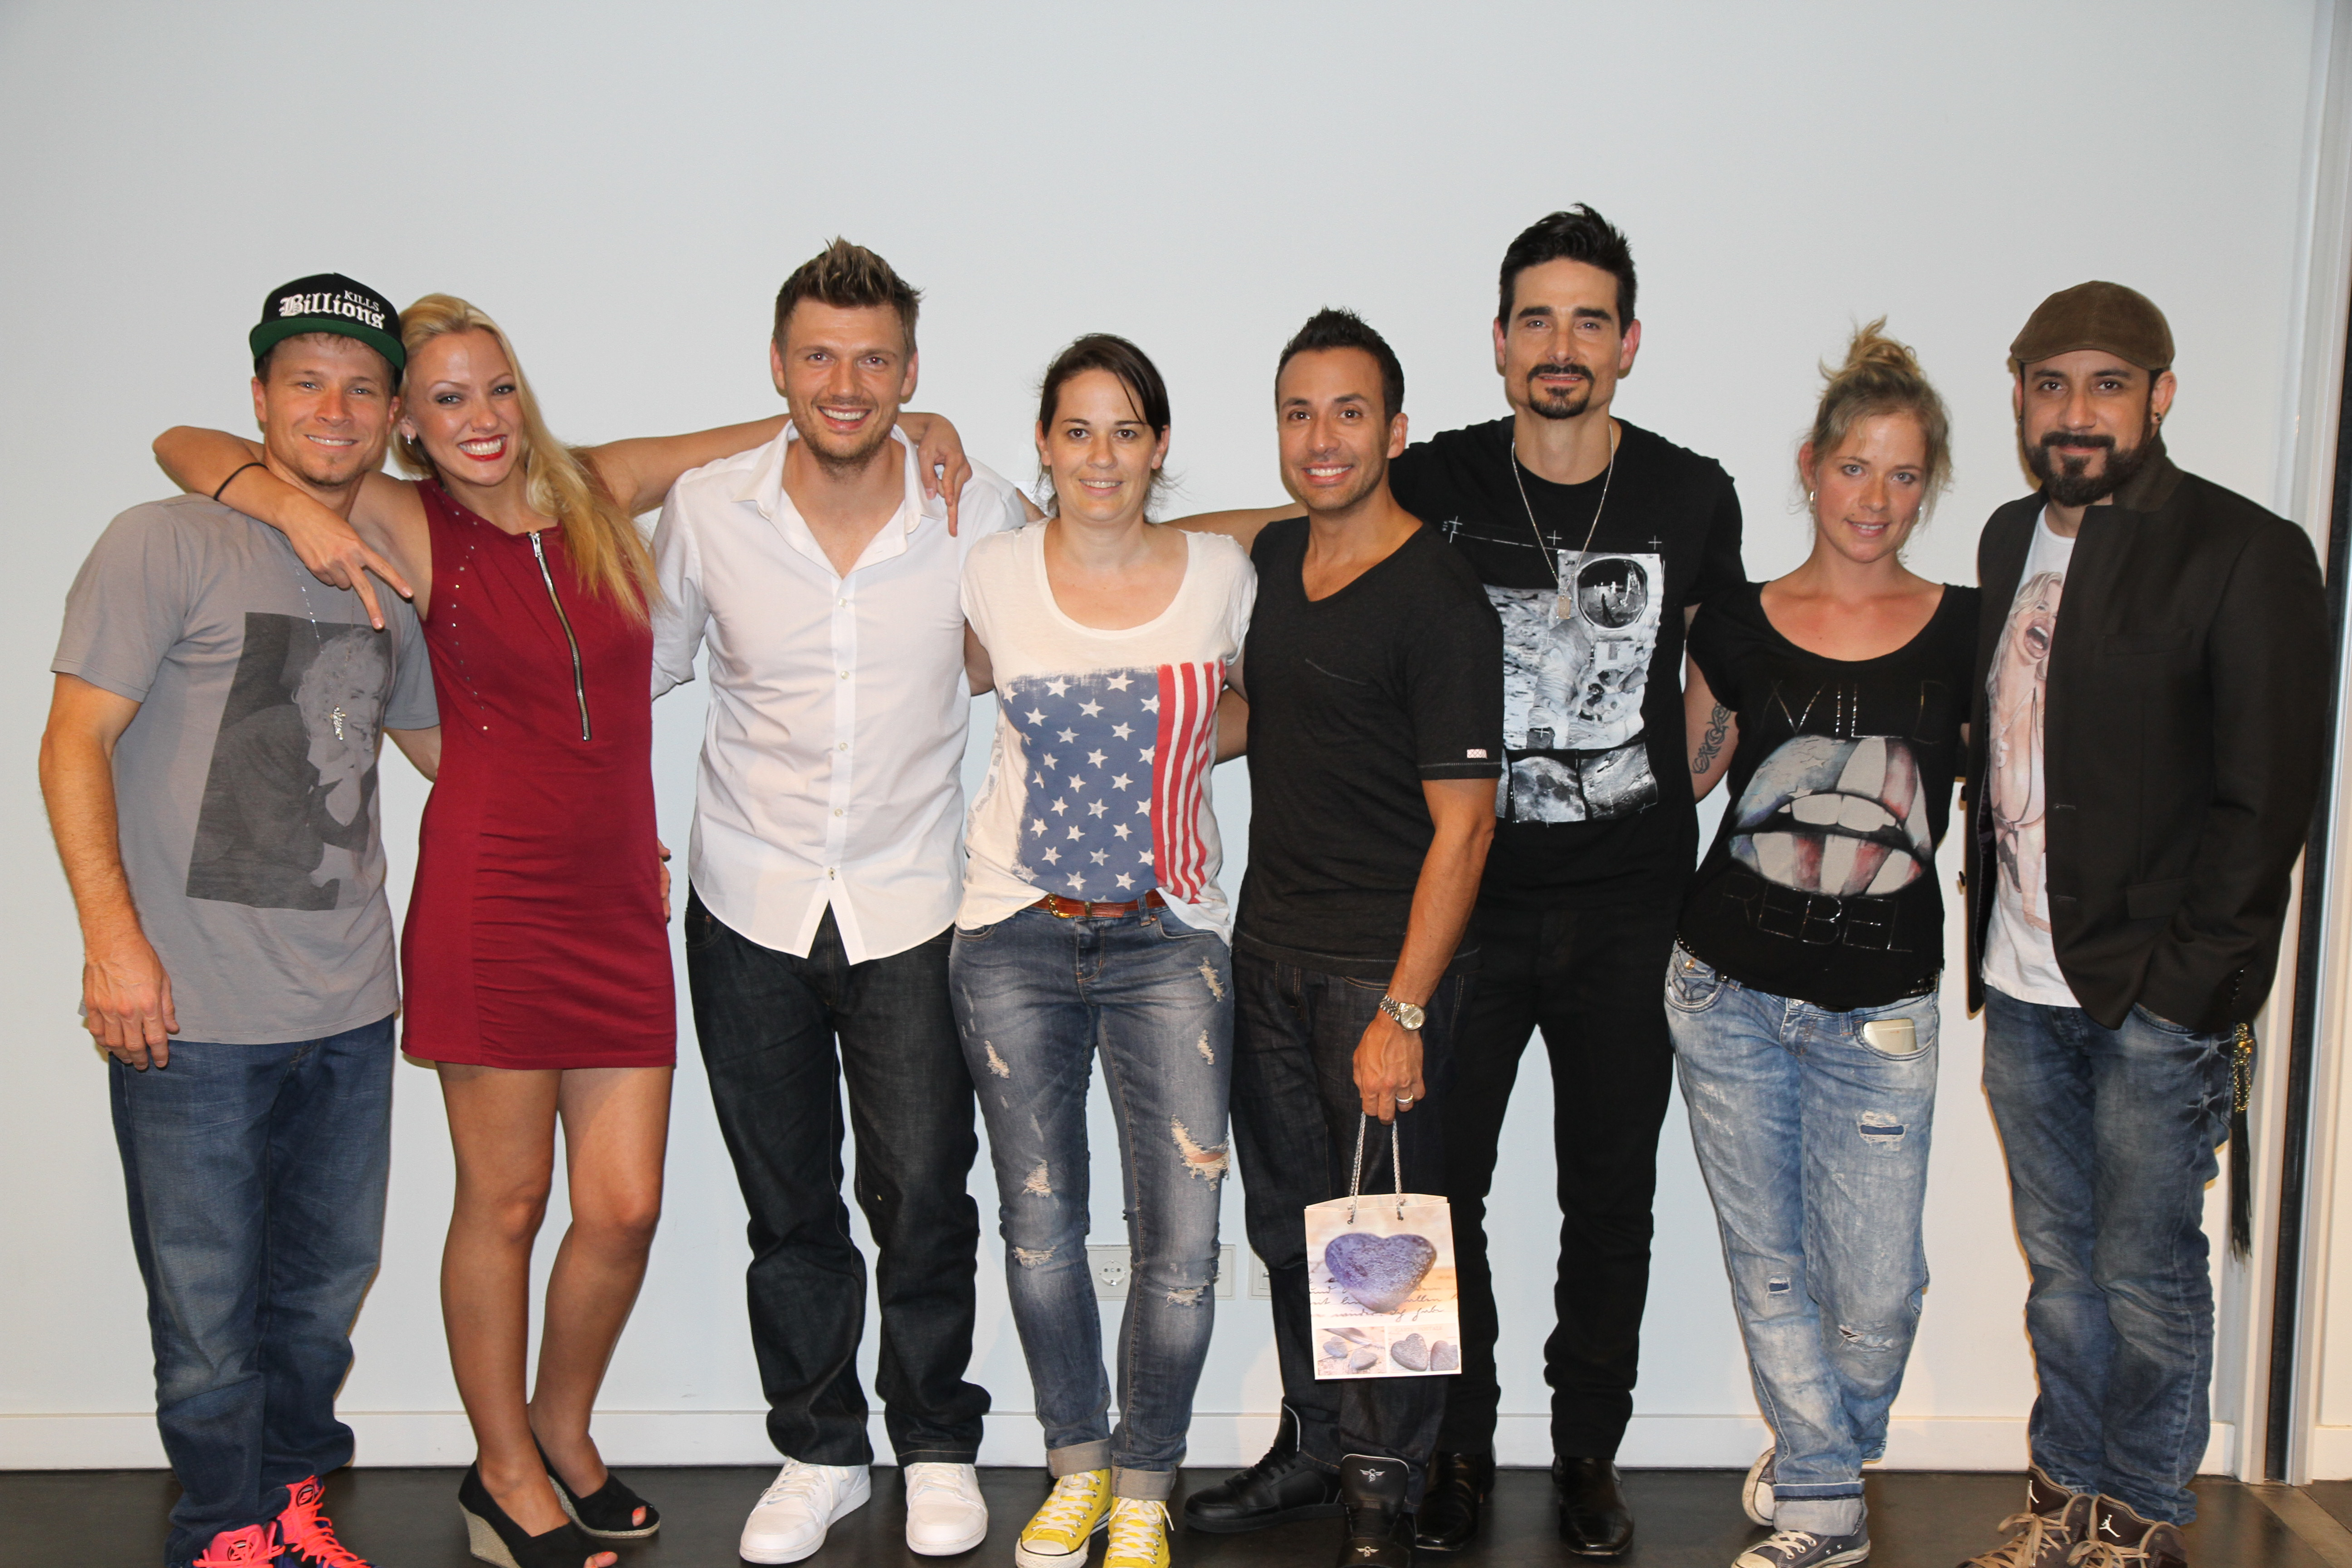 Backstreet boys berlin fan event meet and greet 07042013 16 comments download original m4hsunfo Image collections